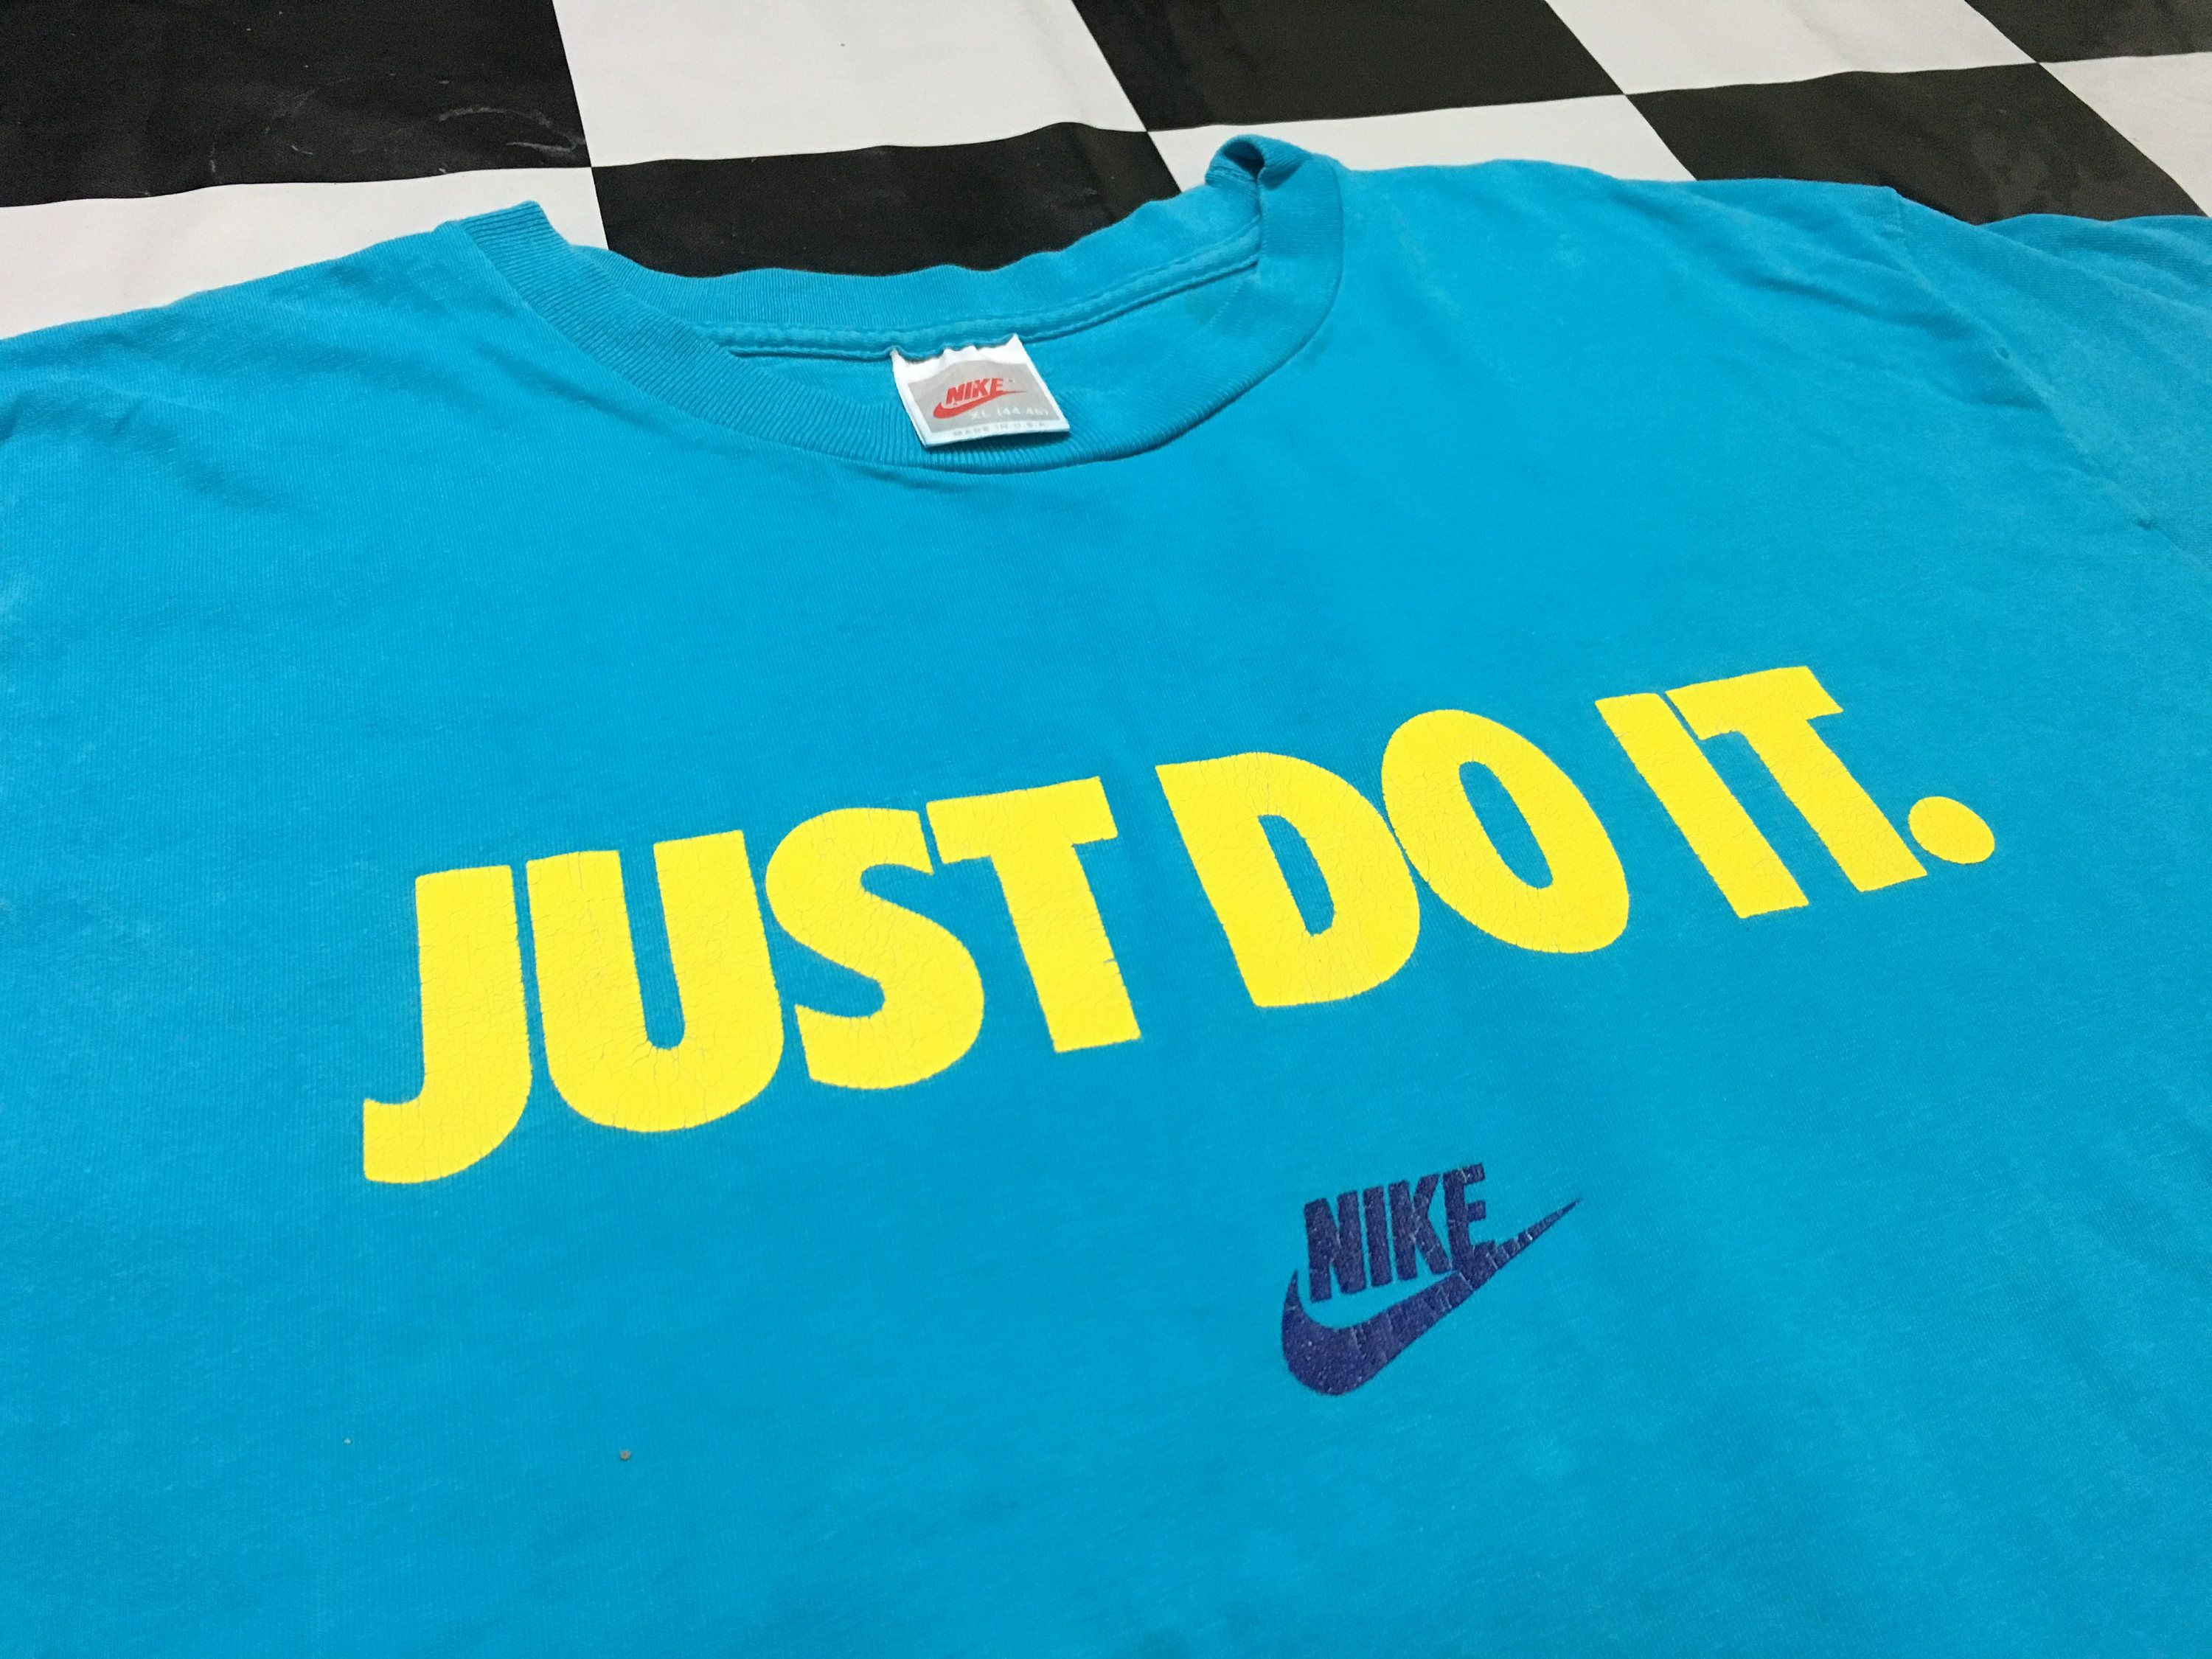 Vintage Nike T Shirt Nike Just Do It Crop T Shirt Good Condition By Alivevintageshop On Etsy Vintage Nike Nike Tshirt T Shirt